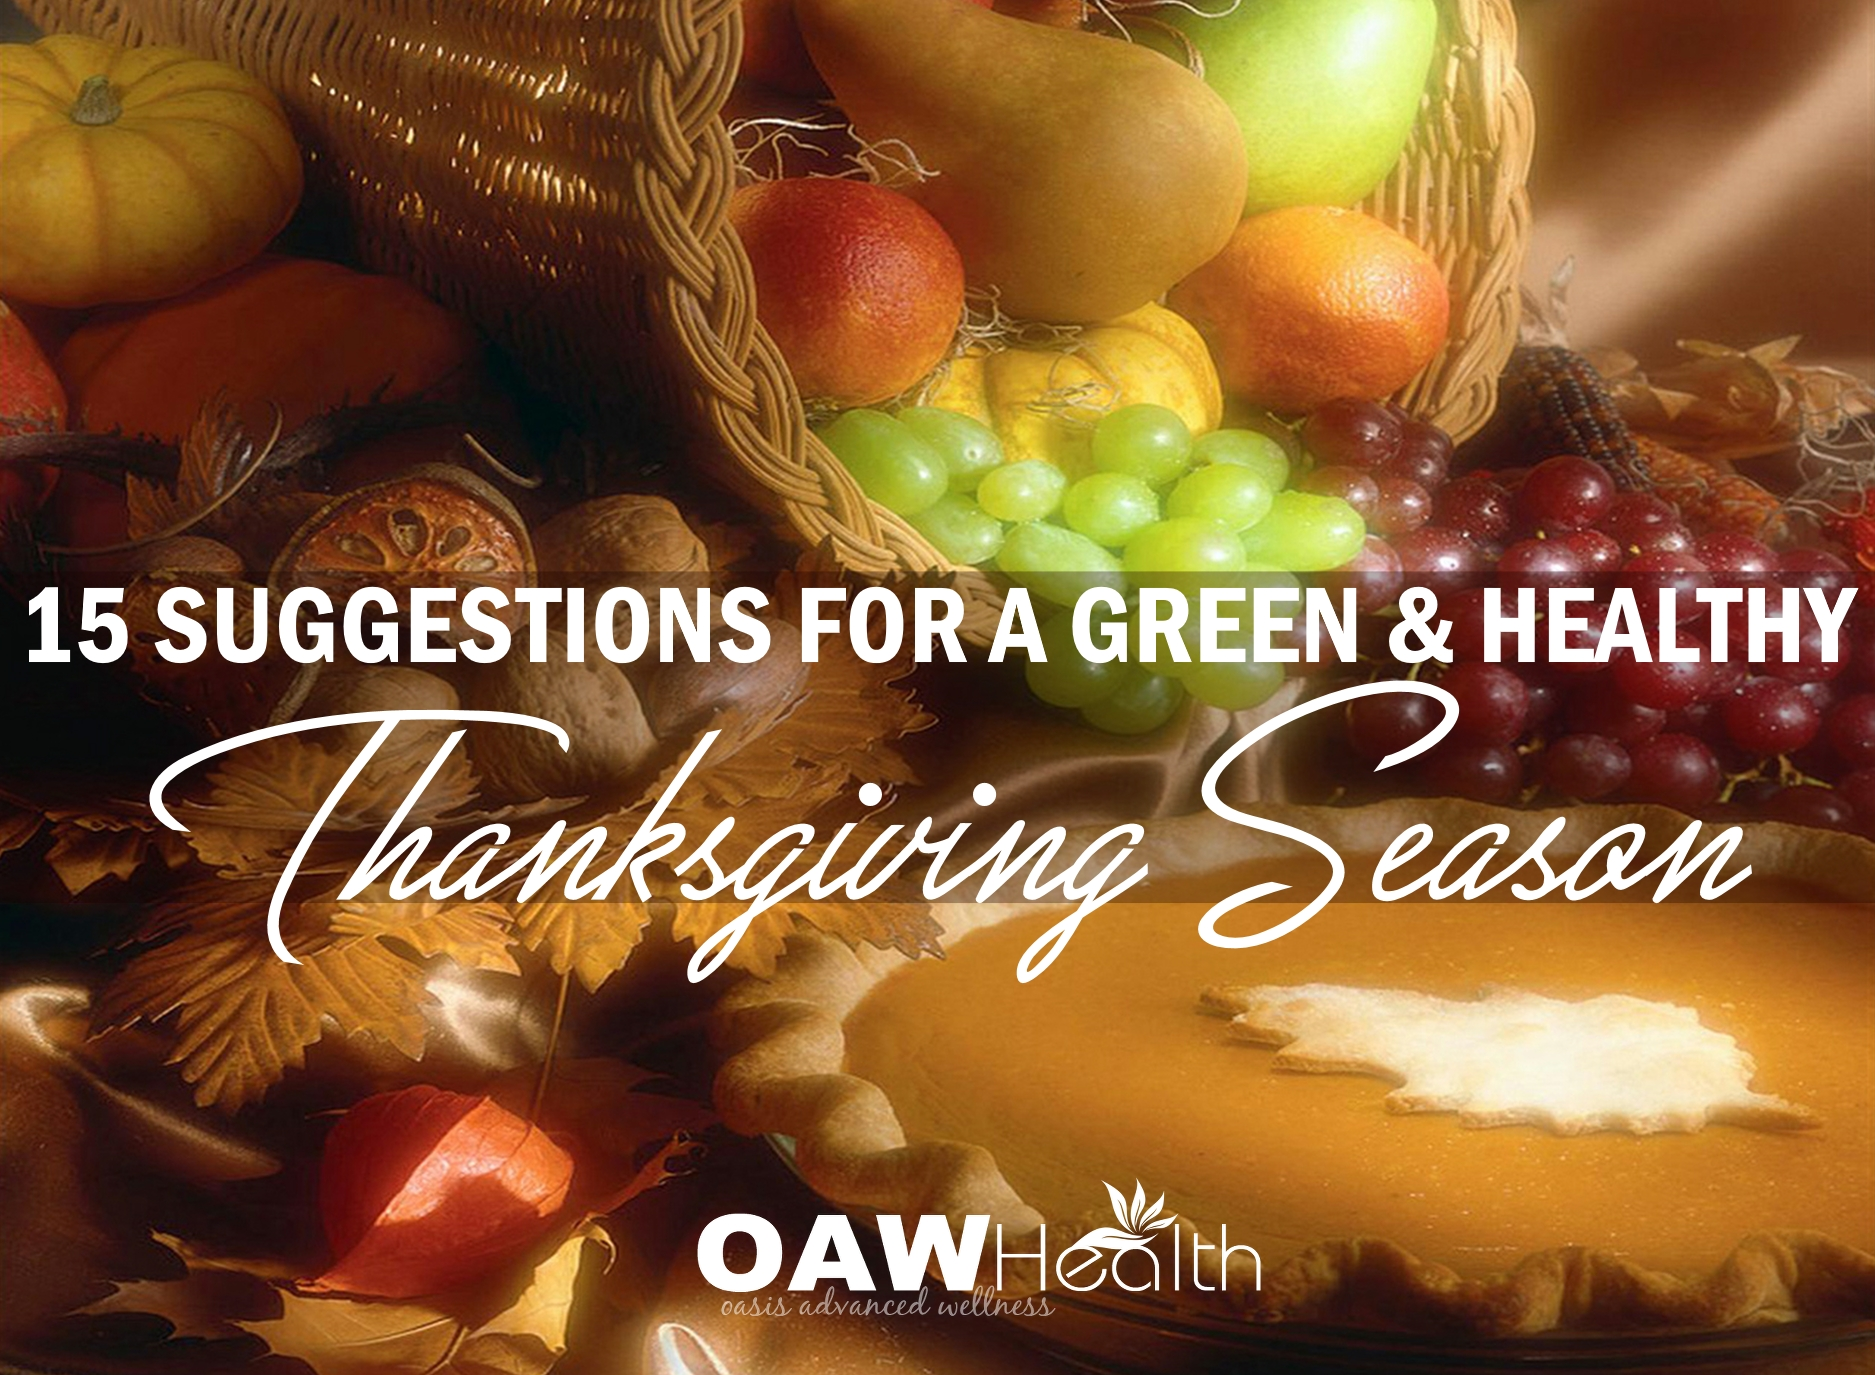 15 Suggestions For a Healthy Thanksgiving Season